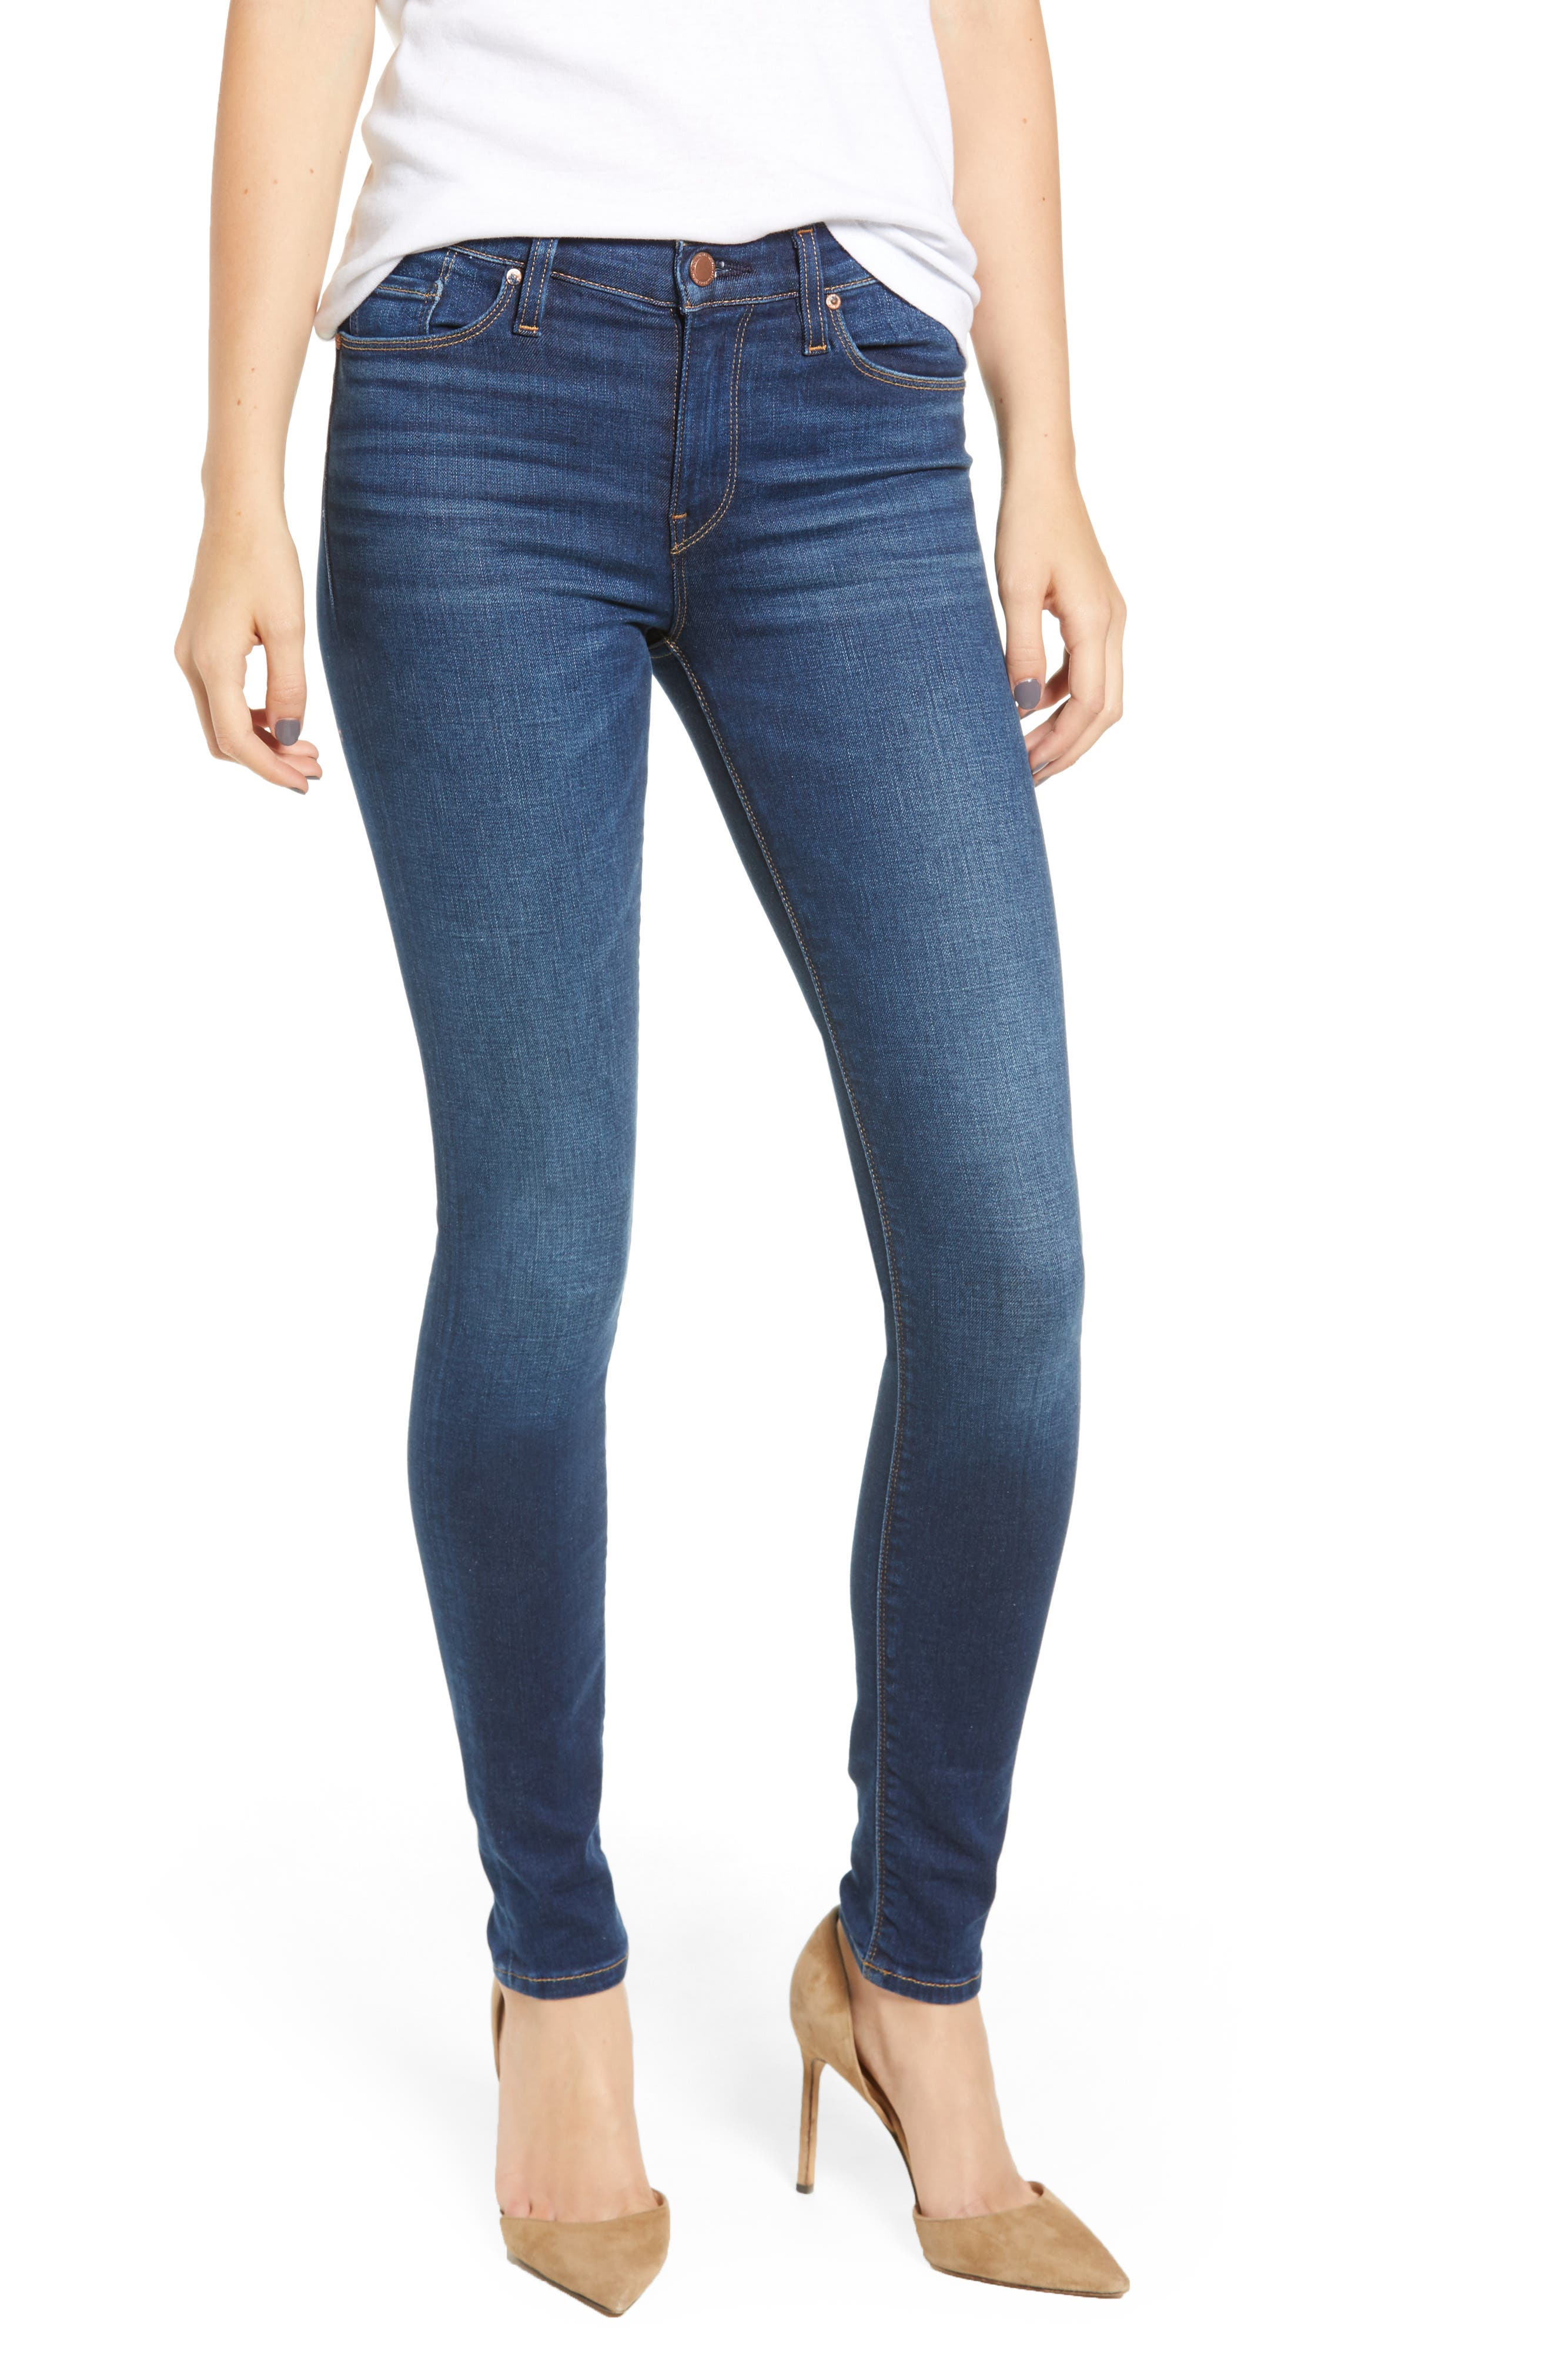 Nico Super Skinny Jeans,                             Main thumbnail 1, color,                             GOWER